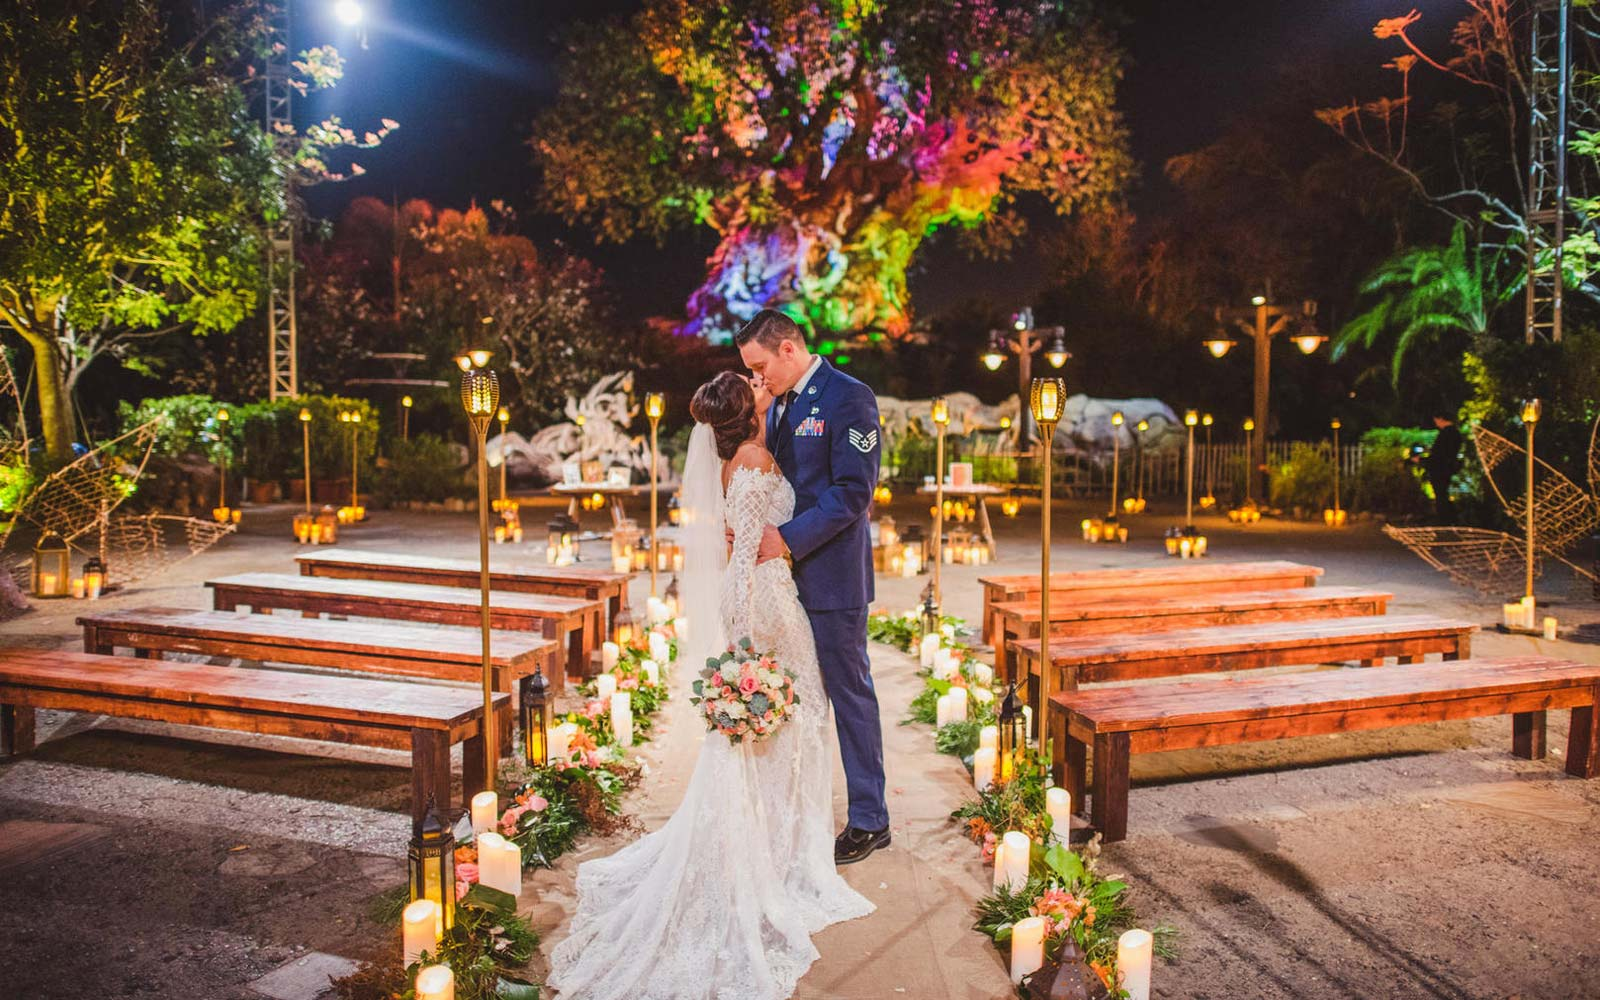 Walt Disney World Opens Wedding Ceremony Venue at the Tree of Life